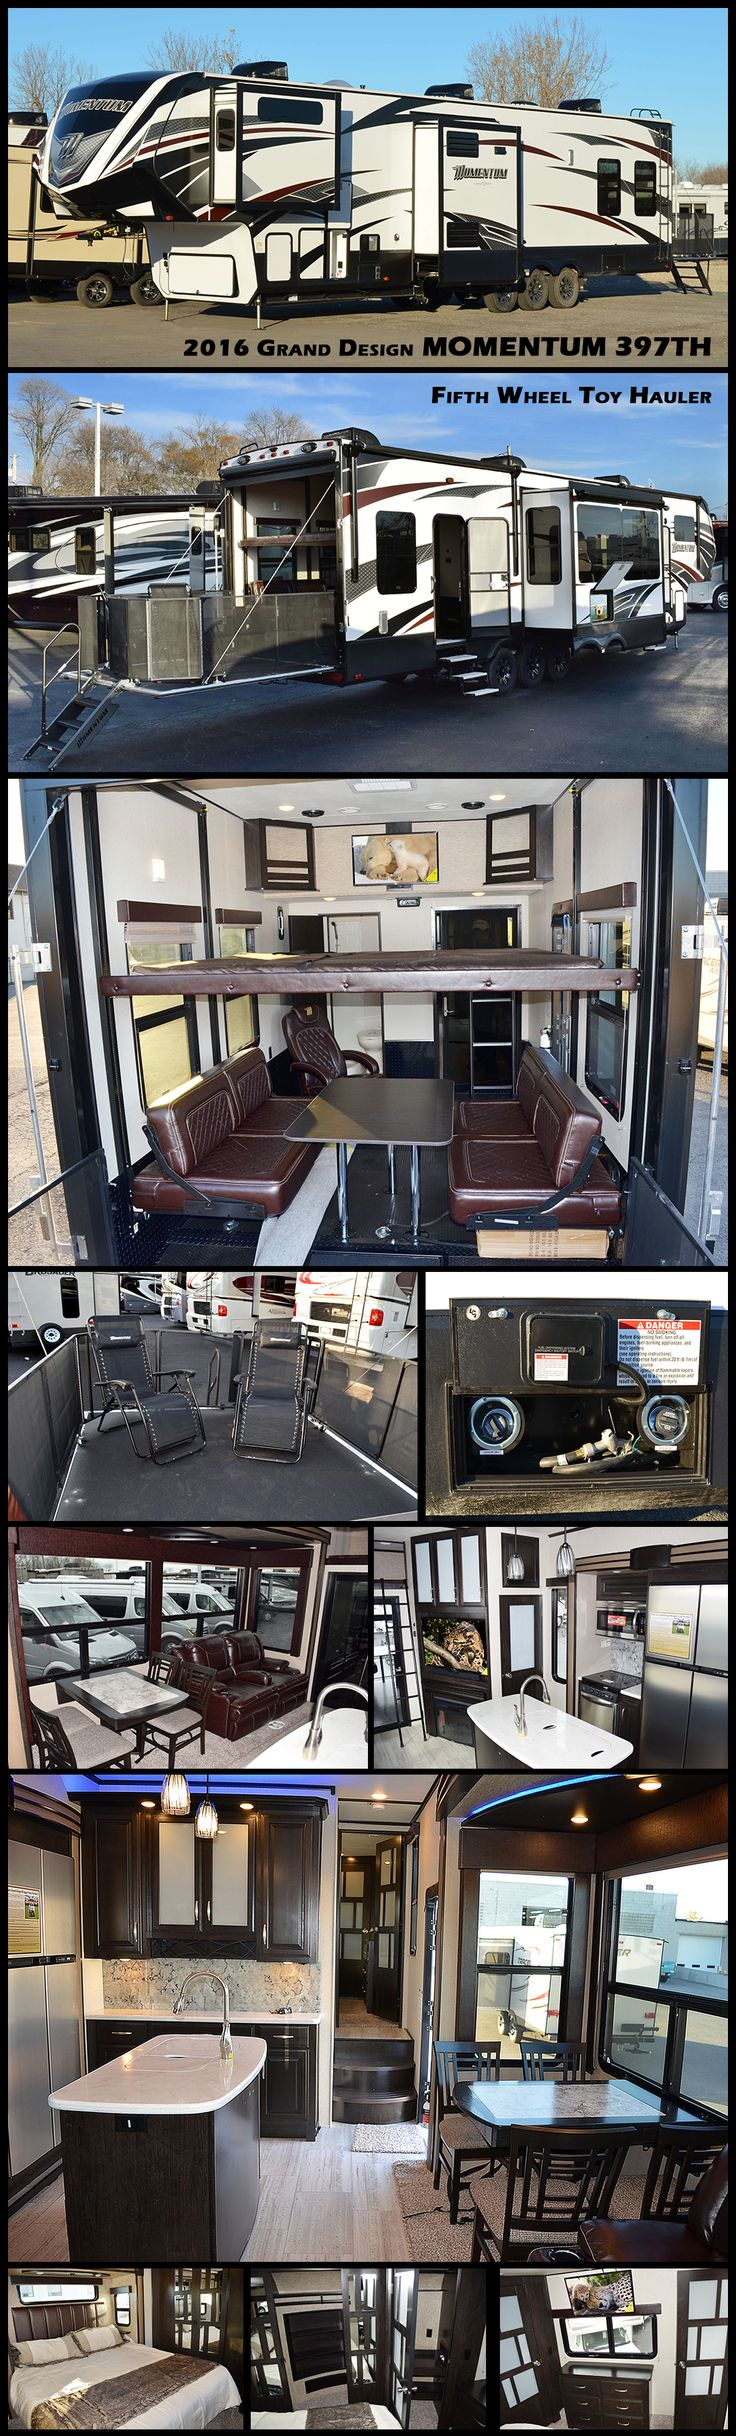 1000 ideas about toy hauler on pinterest fifth wheel rv sales and luxury fifth wheel - Garage for rv model ...